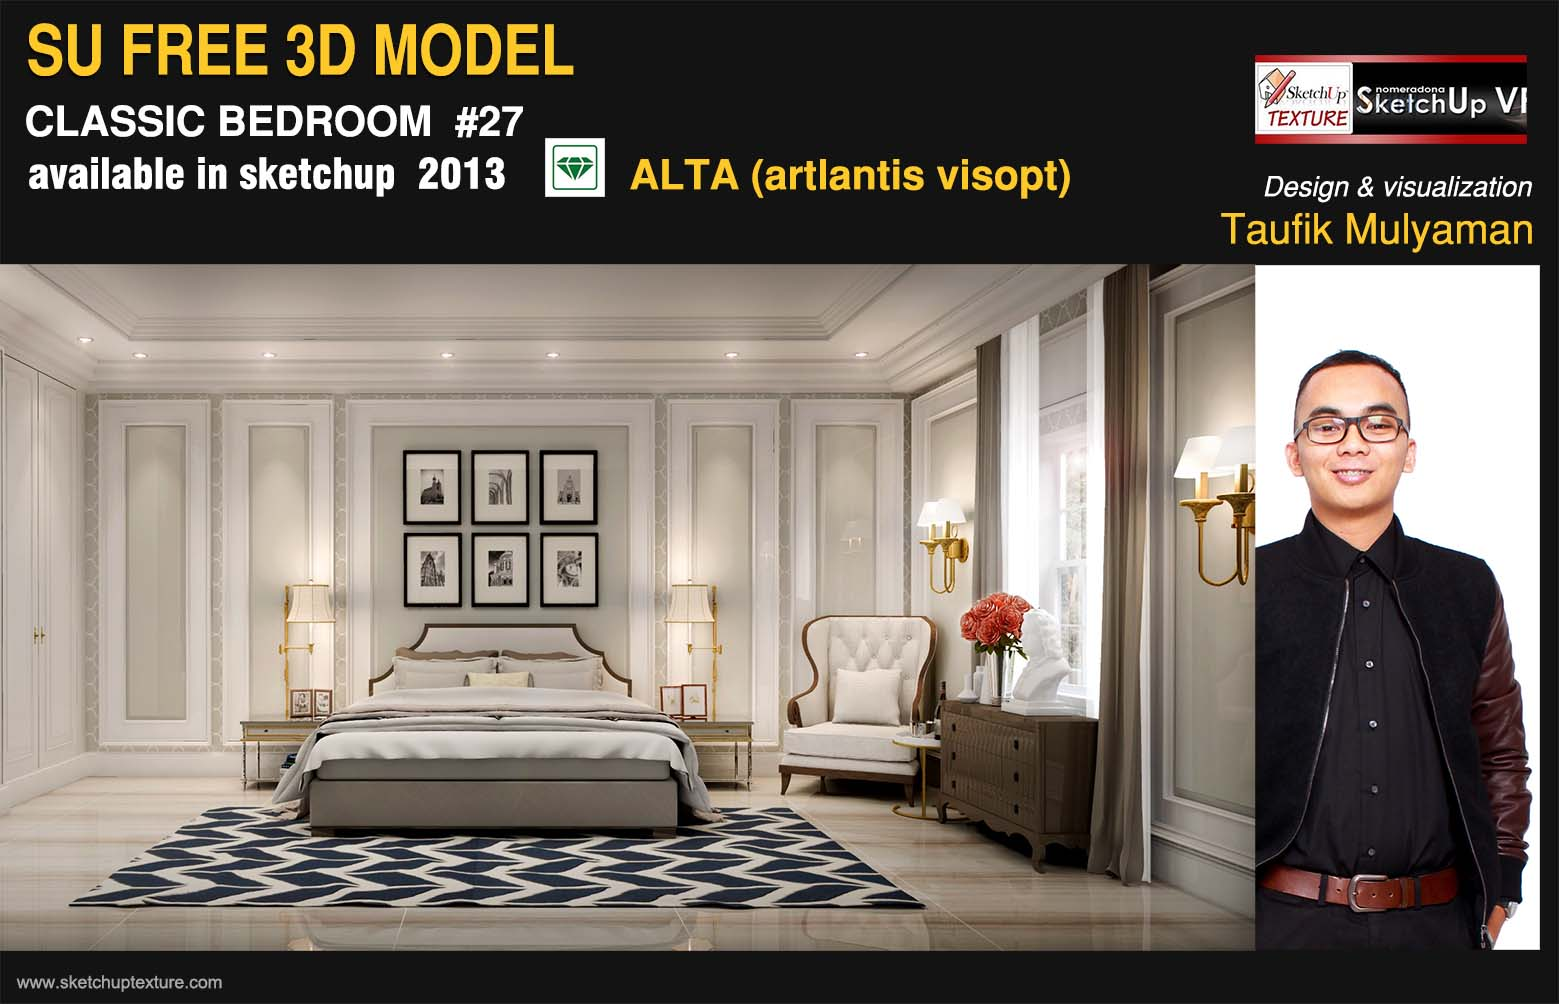 Free Sketchup Model Refined Classic Bedroom 27 Artlantis Alta Tutorial Ske